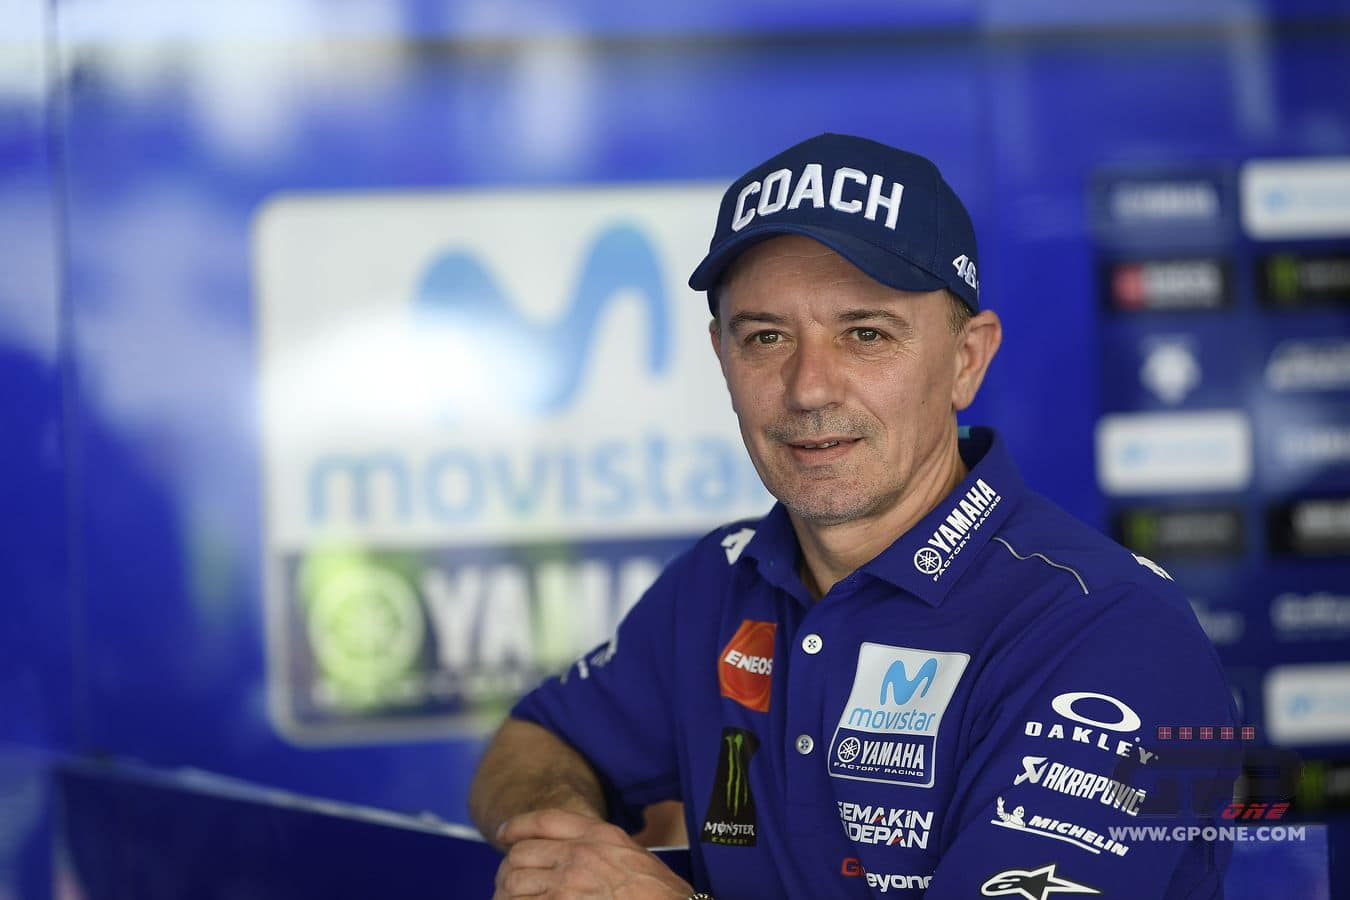 """Not to fret, Rossi fans, Cadalora's job as """"COACH"""" is safe."""